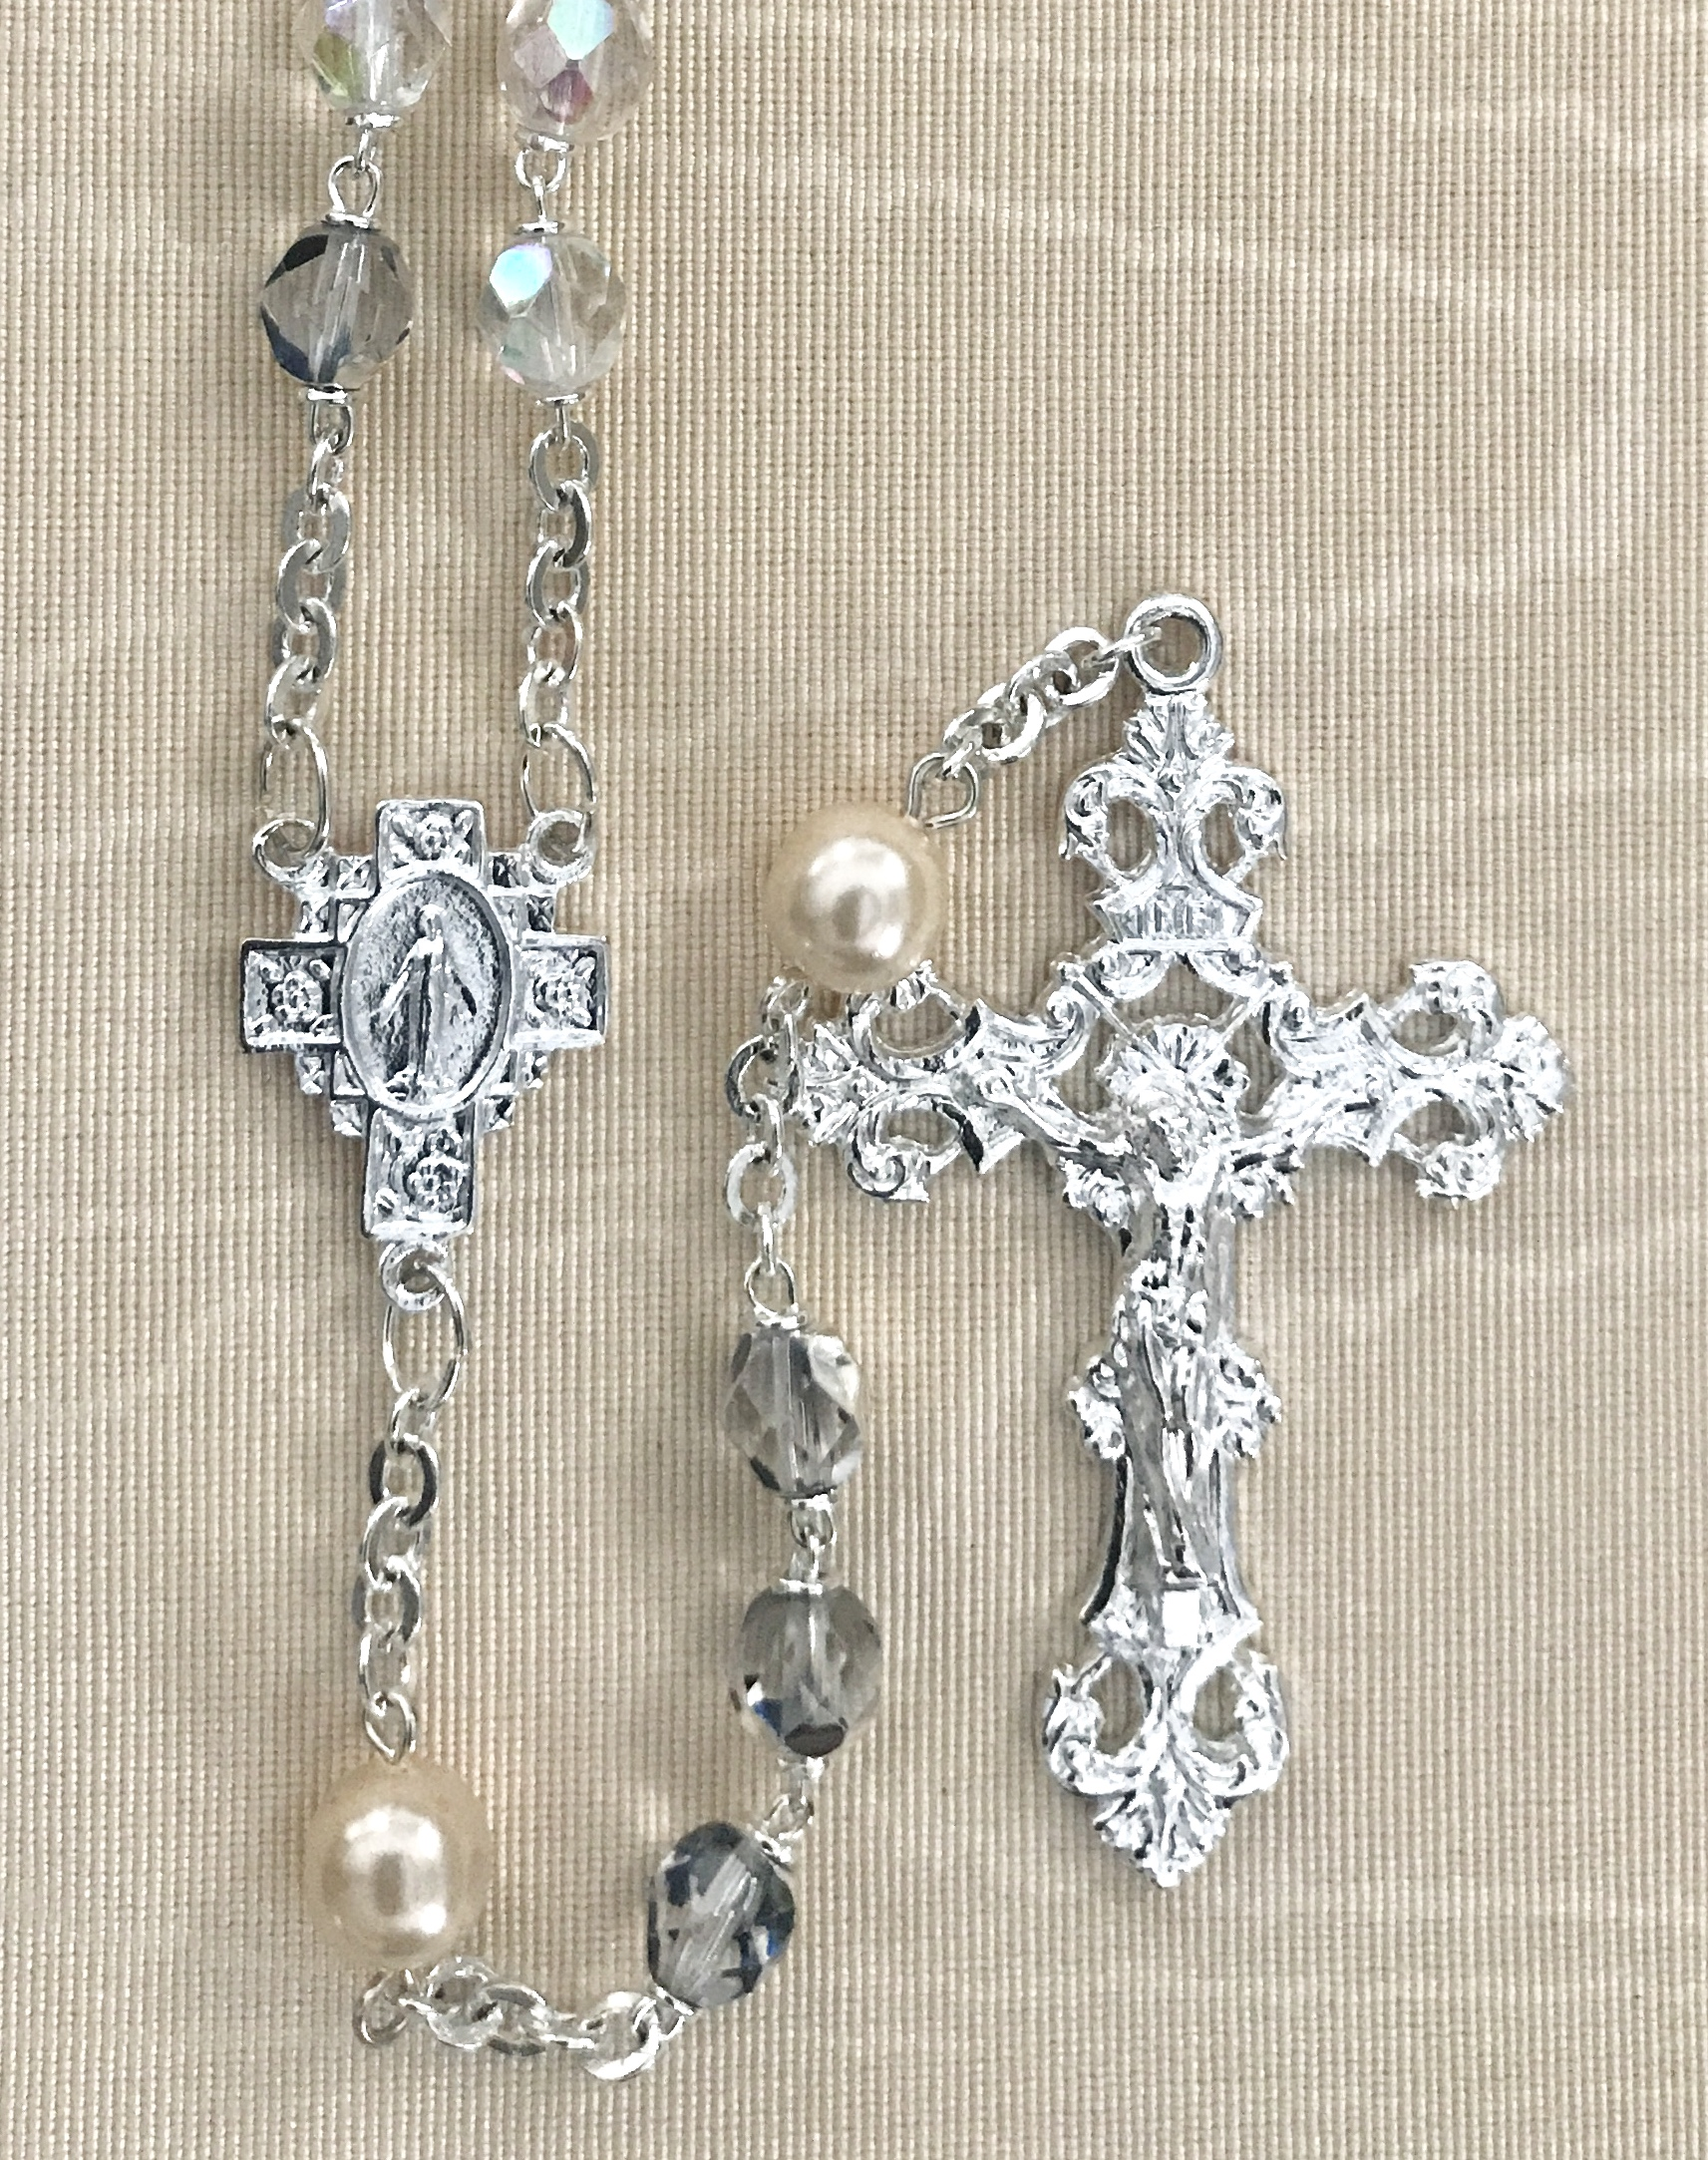 7mm CRYSTAL AB WITH PEARL OUR FATHER BEADS STERLING SILVER PLATED ROSARY GIFT BOXED